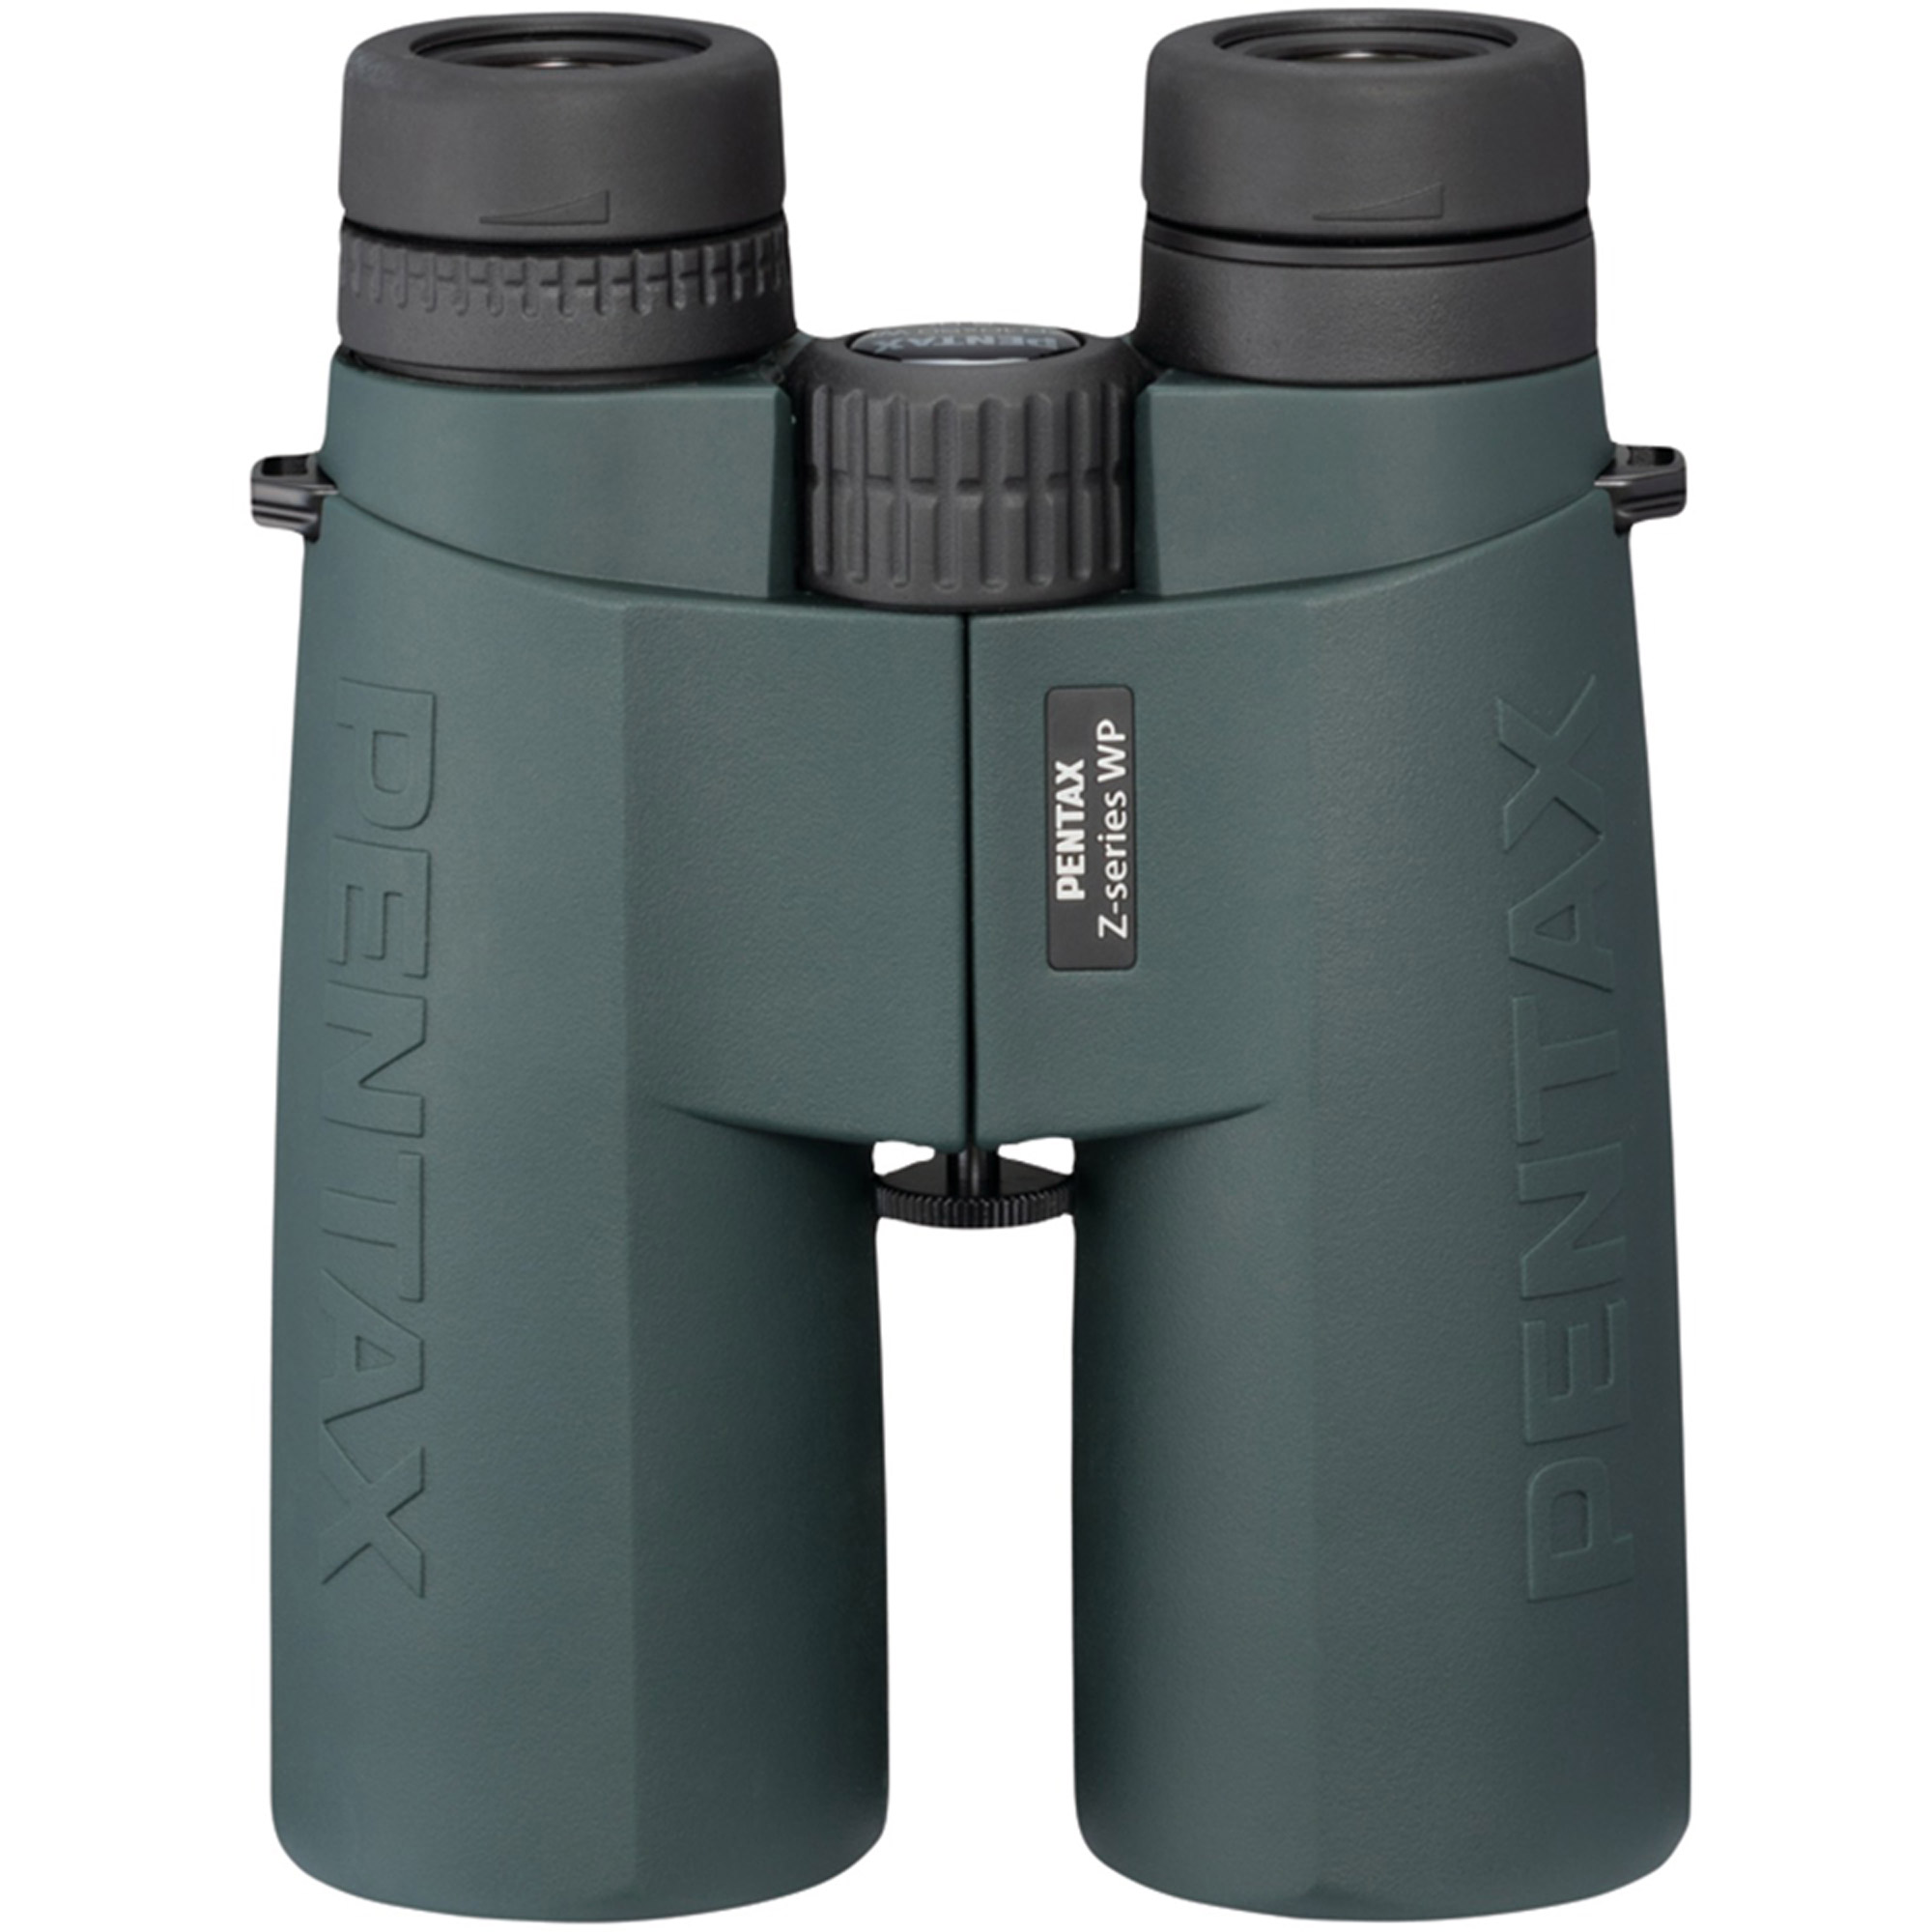 Pentax 62723 ZD 10 x 50mm Waterproof Binoculars